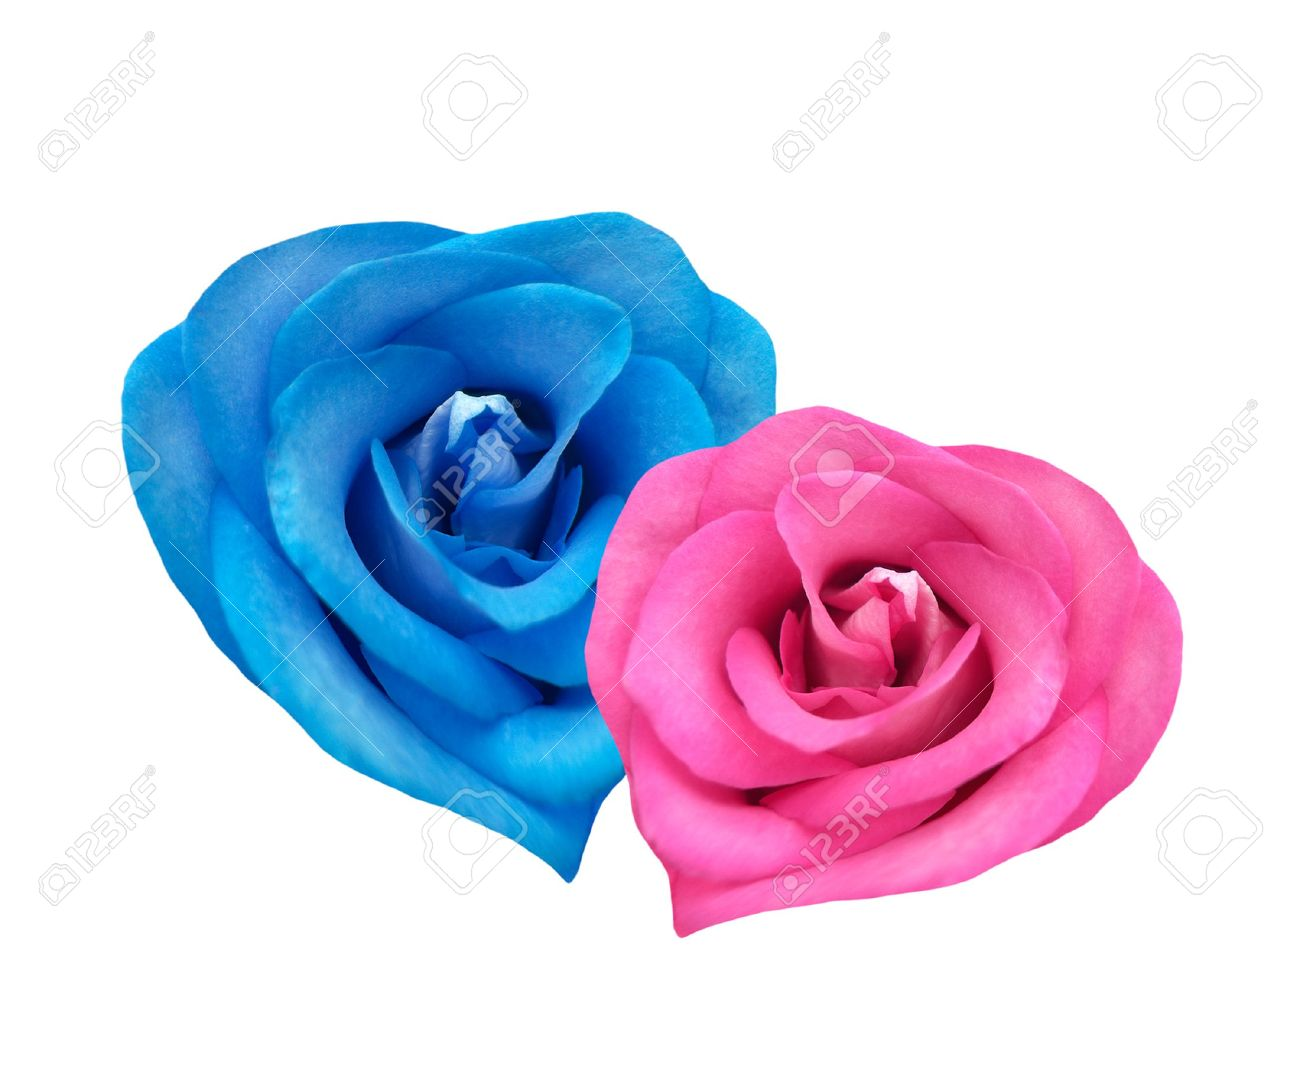 Red and blue roses in the form of hearts together - 2492490